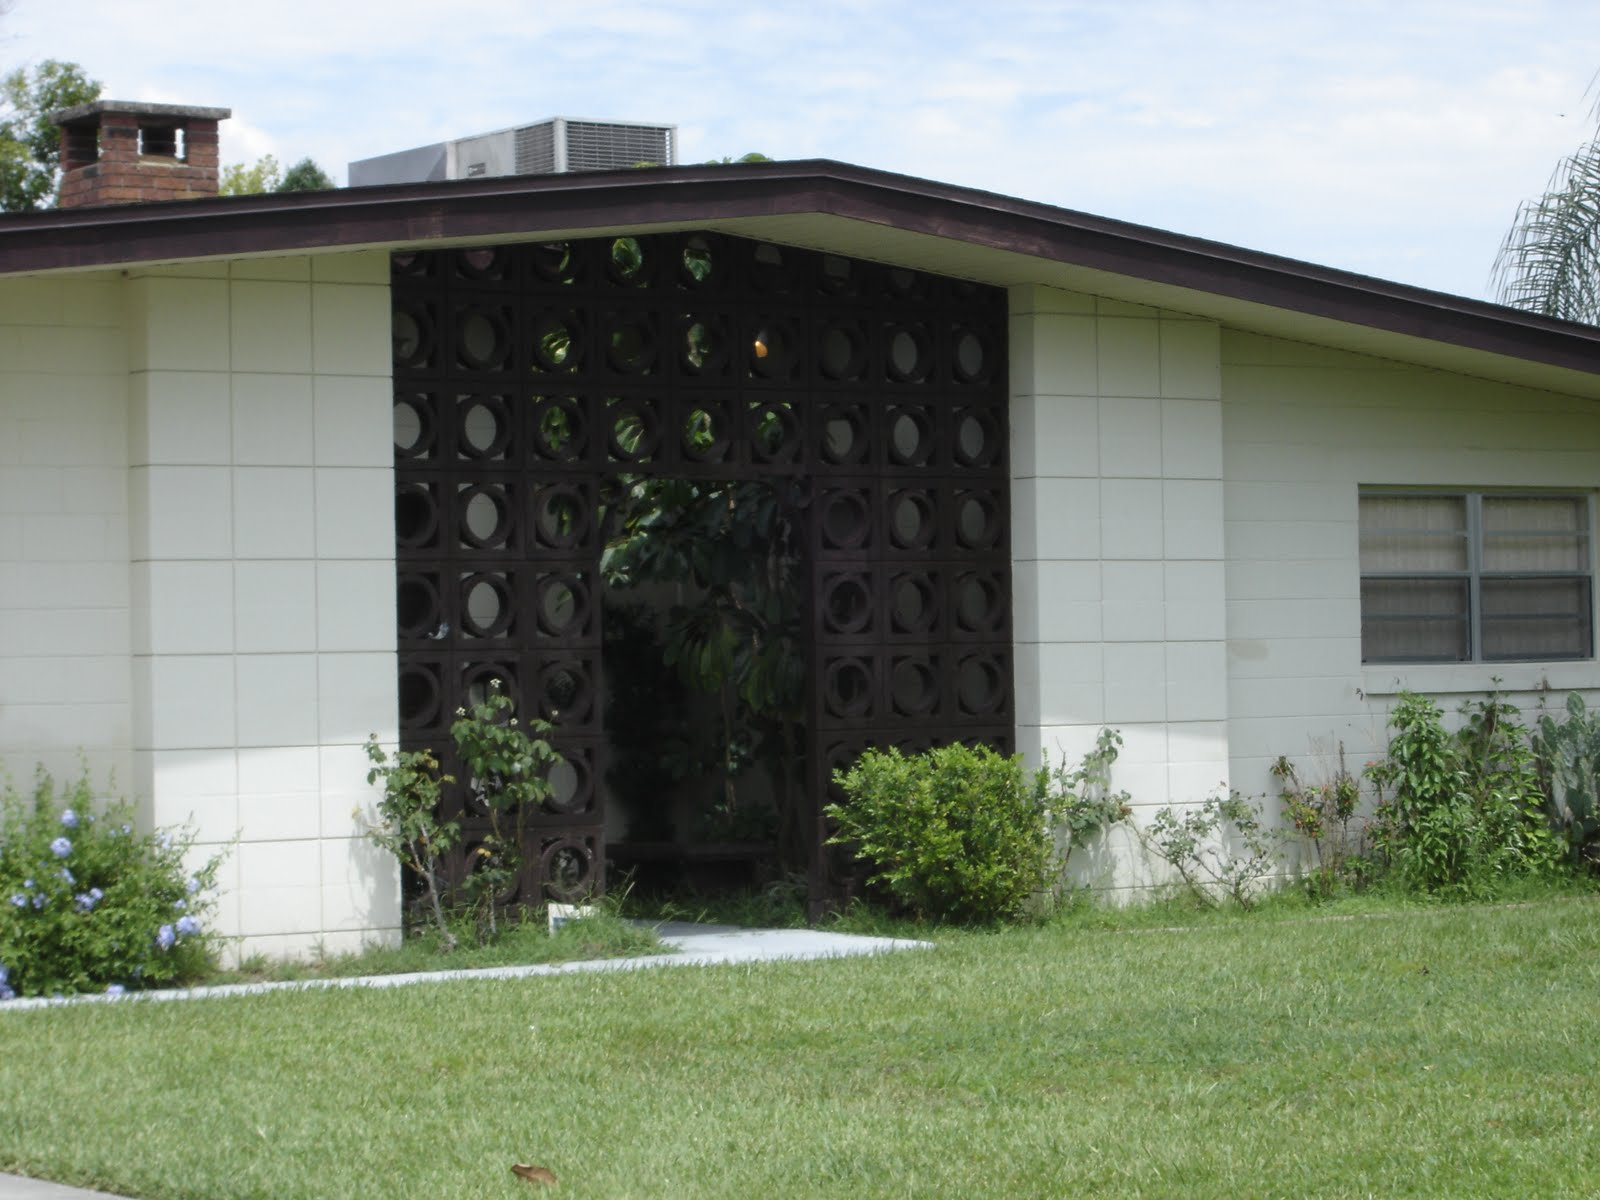 places to go buildings to see houses kissimmee florida rh placestogobuildingstosee blogspot com block homes in florida Baker Florida